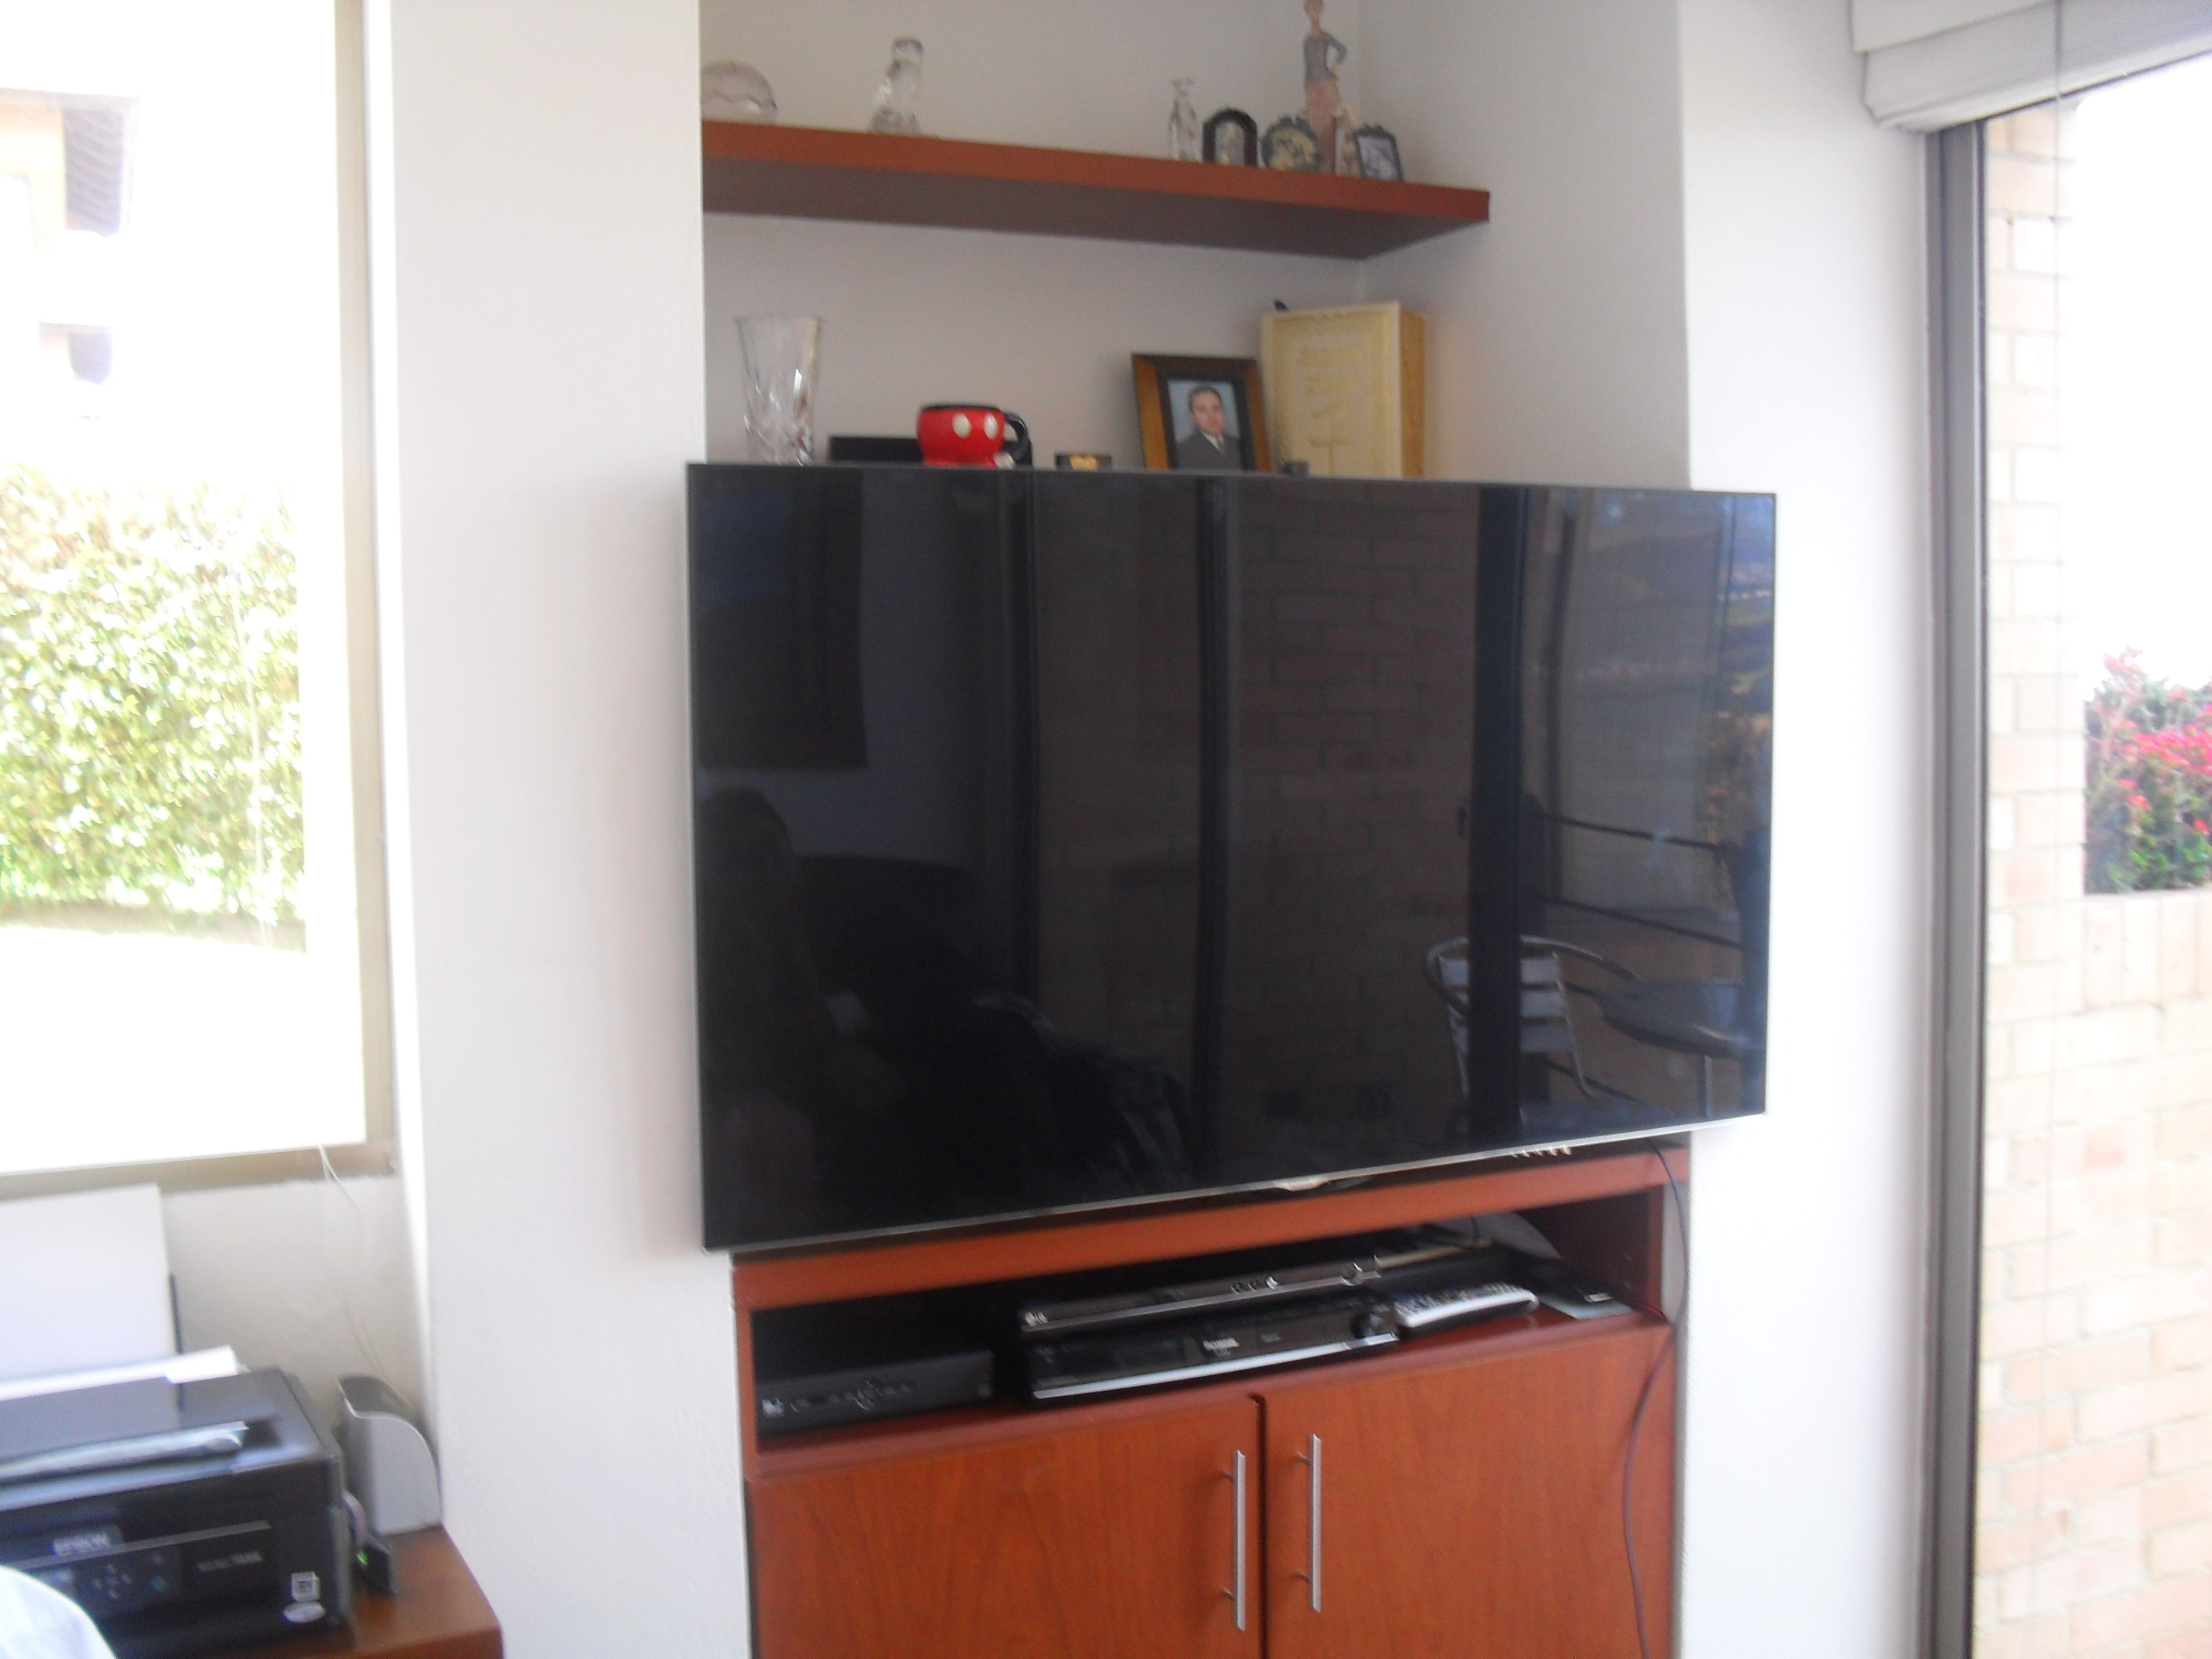 Mueble Tv Pared Empotrar Tv Led Lcd En Closet Armario Mueble Y Biblioteca Con